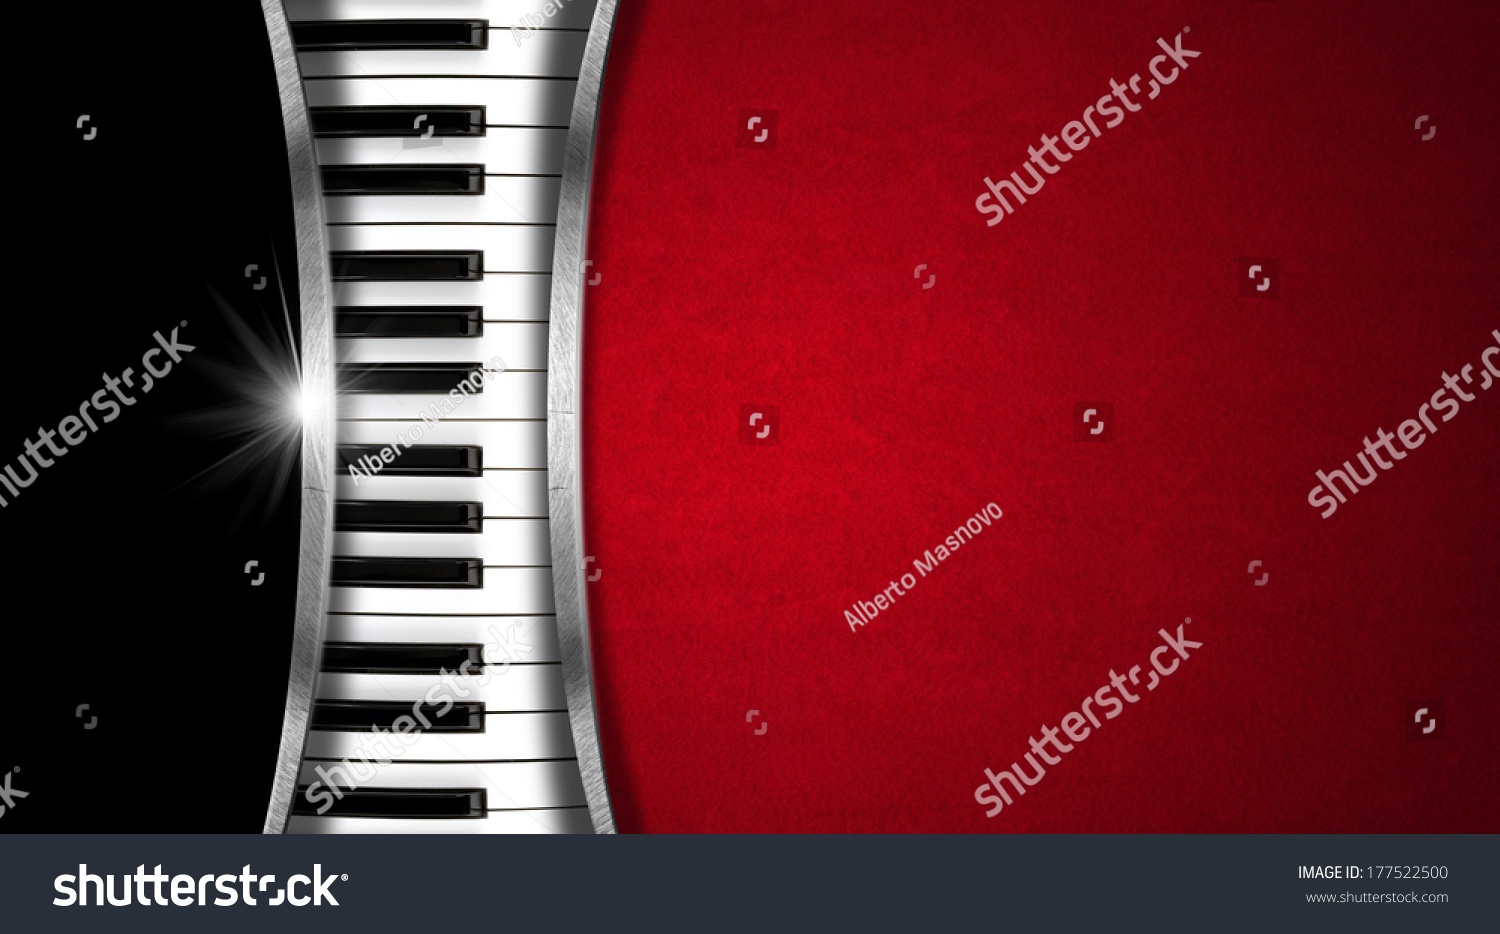 Music vintage business card piano keyboard stock illustration music vintage business card piano keyboard on black and red velvet background and metal stripes magicingreecefo Images